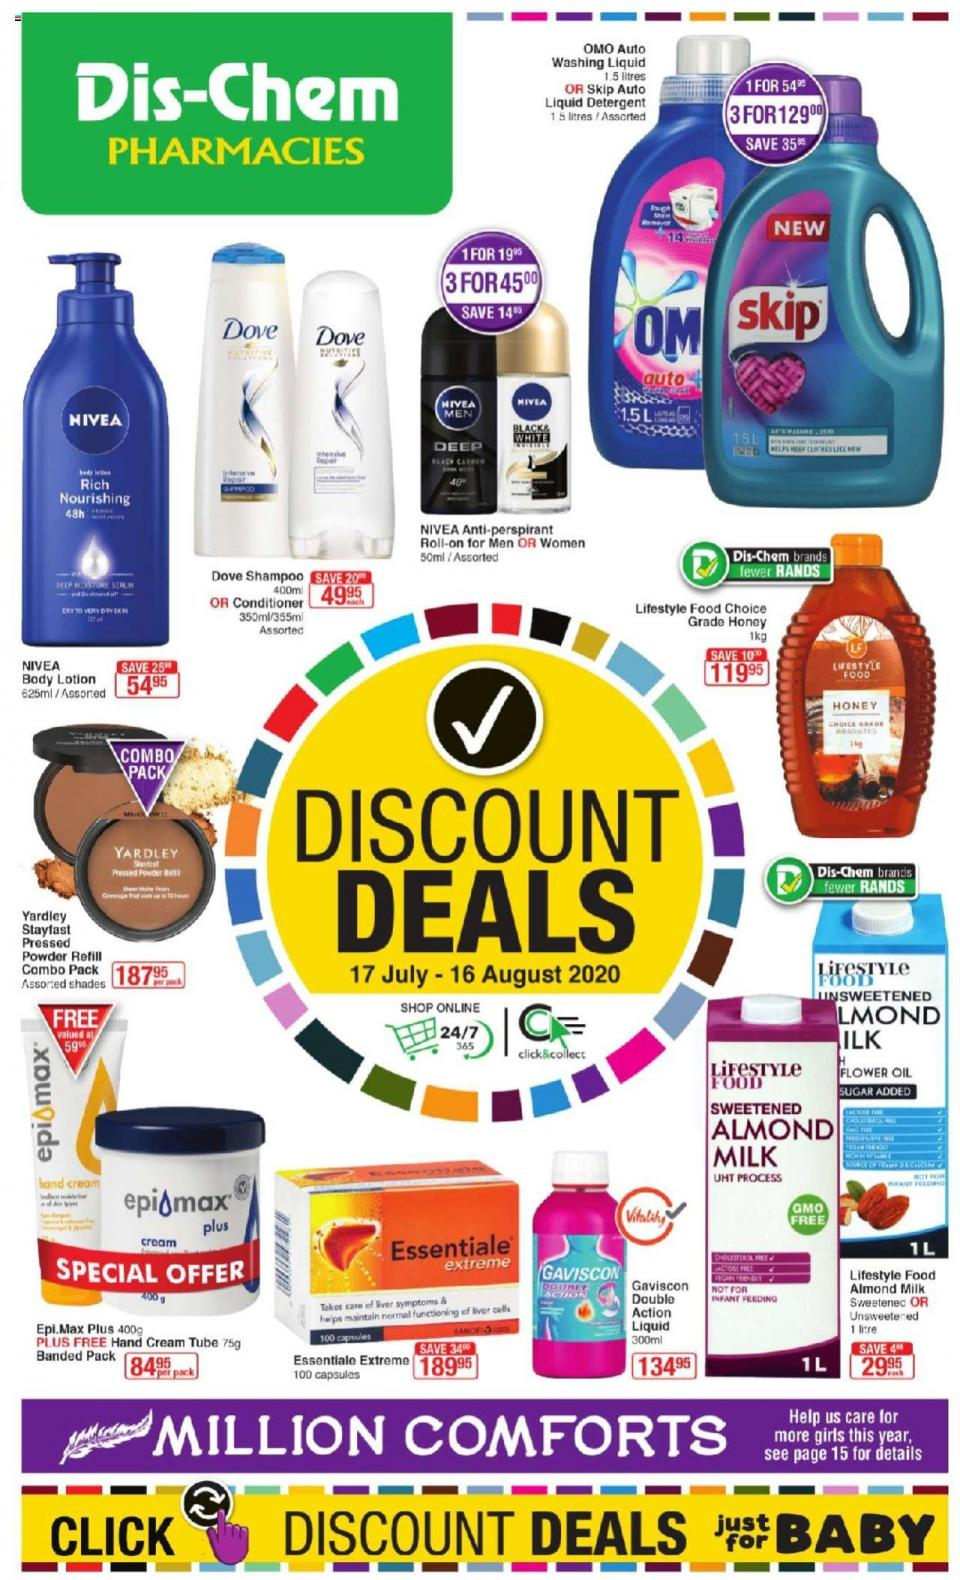 dischem specials discount deals 17 july 2020